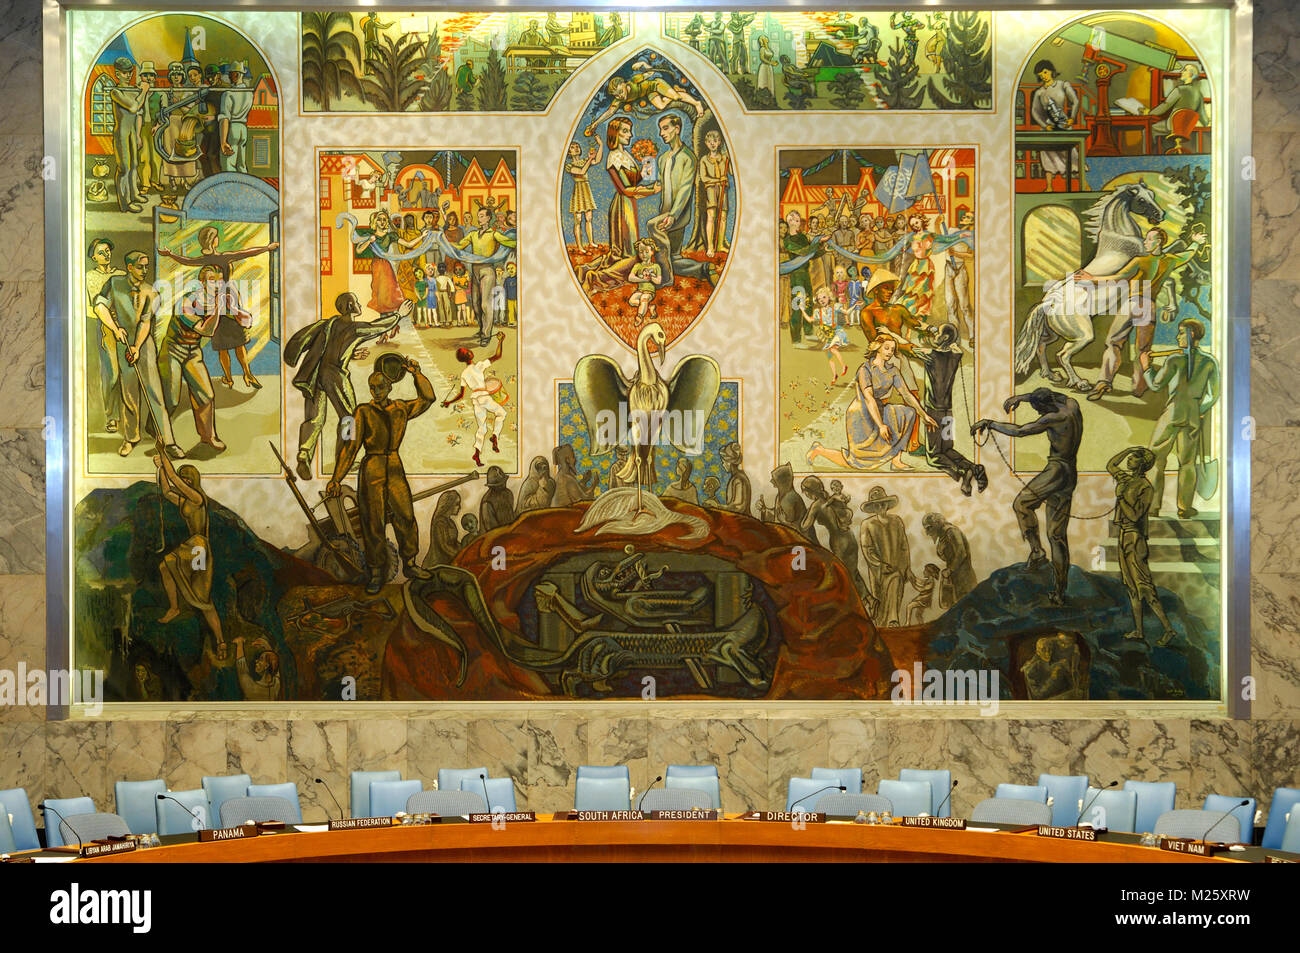 Oil canvas mural painted by the Norwegian artist Per Krogh, Security Council Chamber, United Nations, New York, - Stock Image